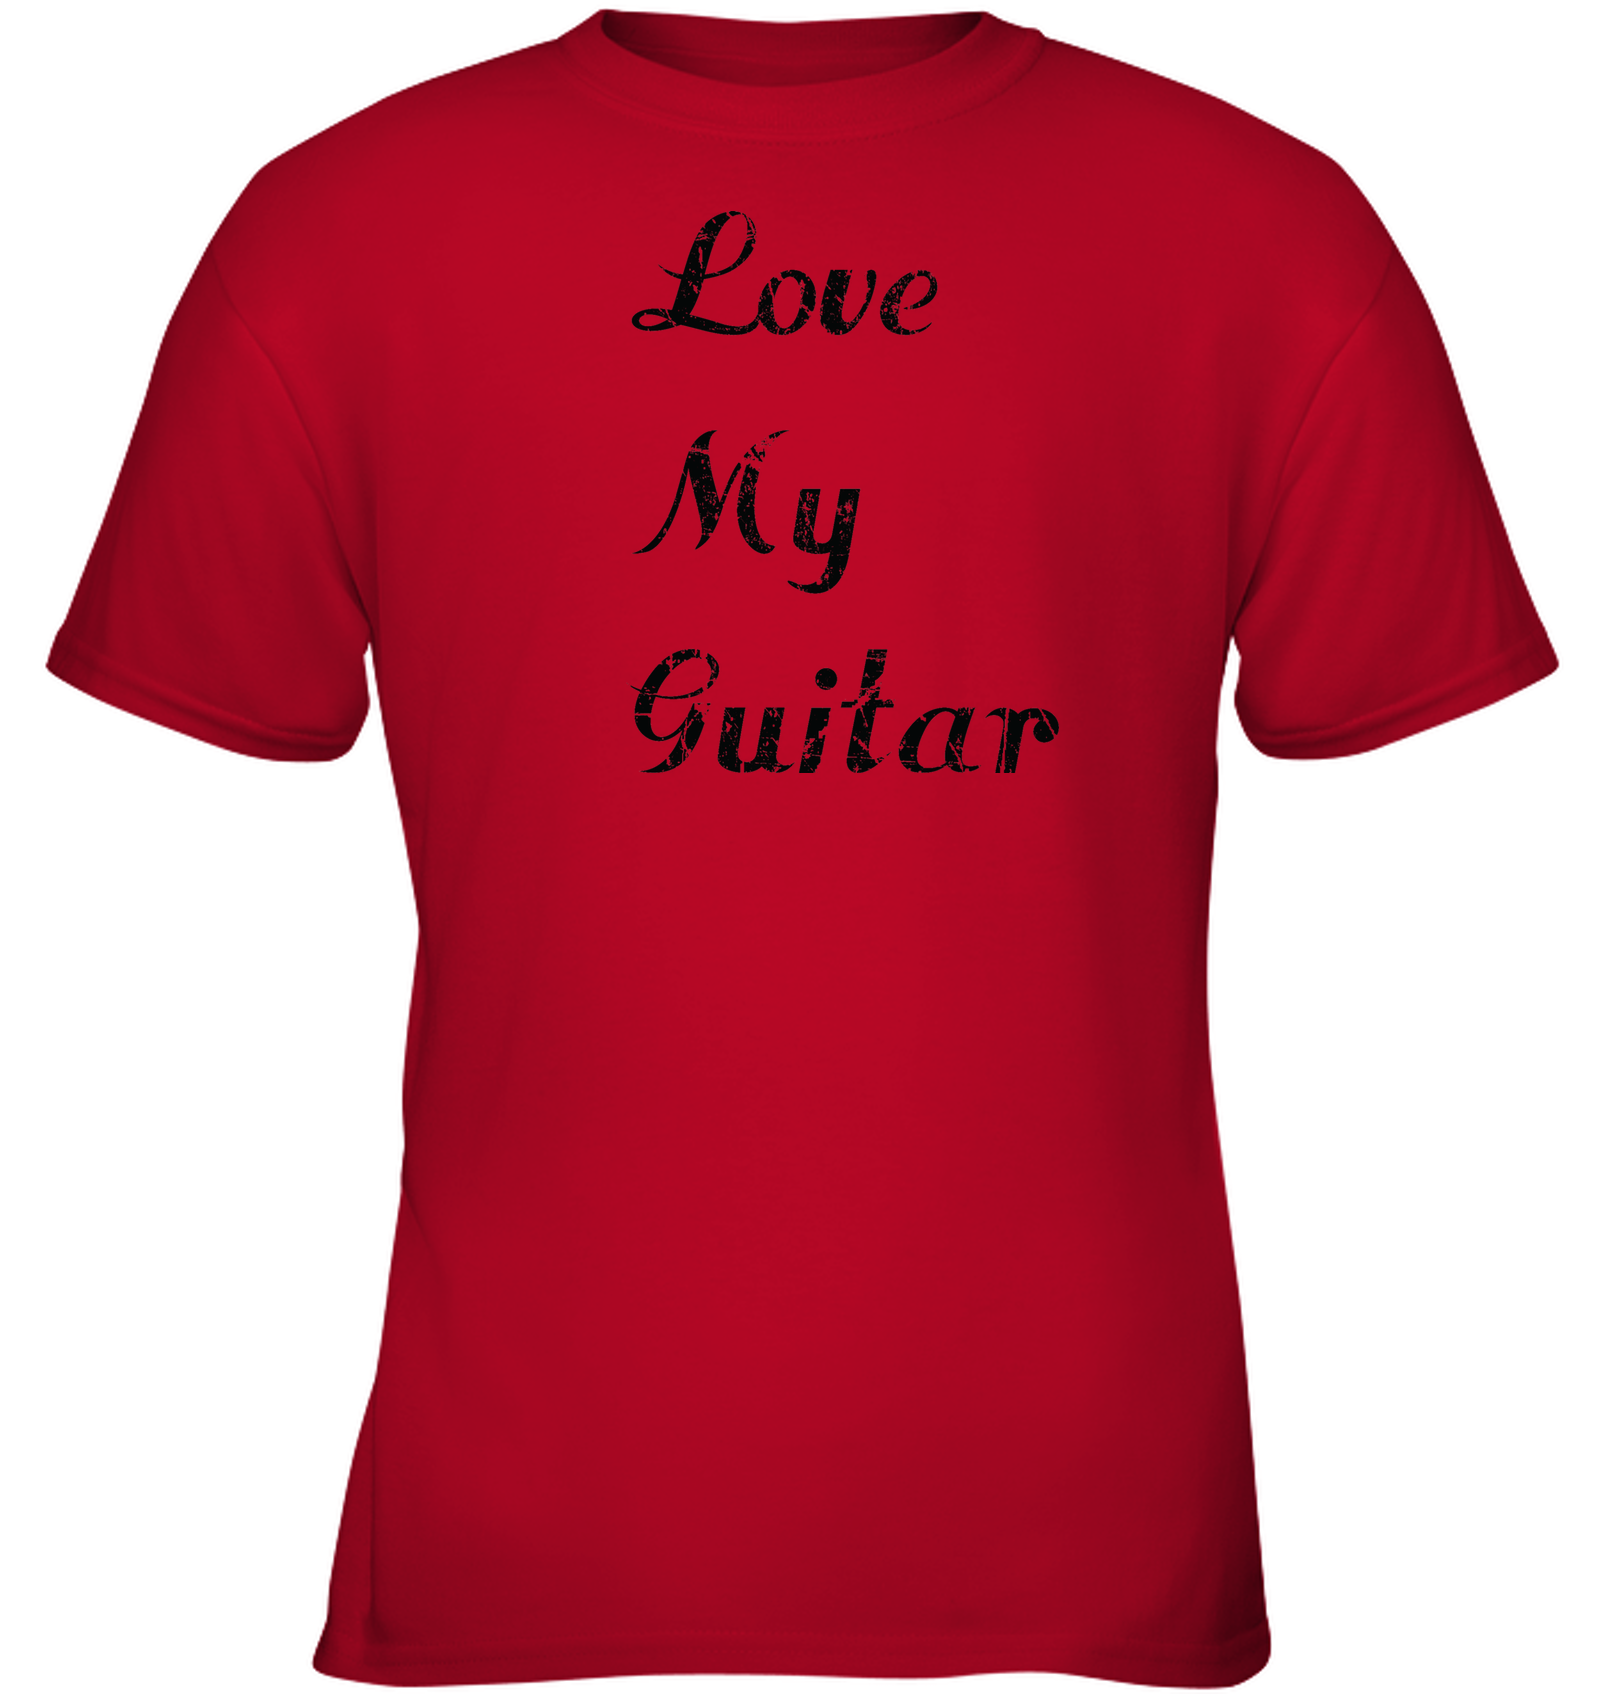 Love My Guitar simple and true - Gildan Youth Short Sleeve T-Shirt